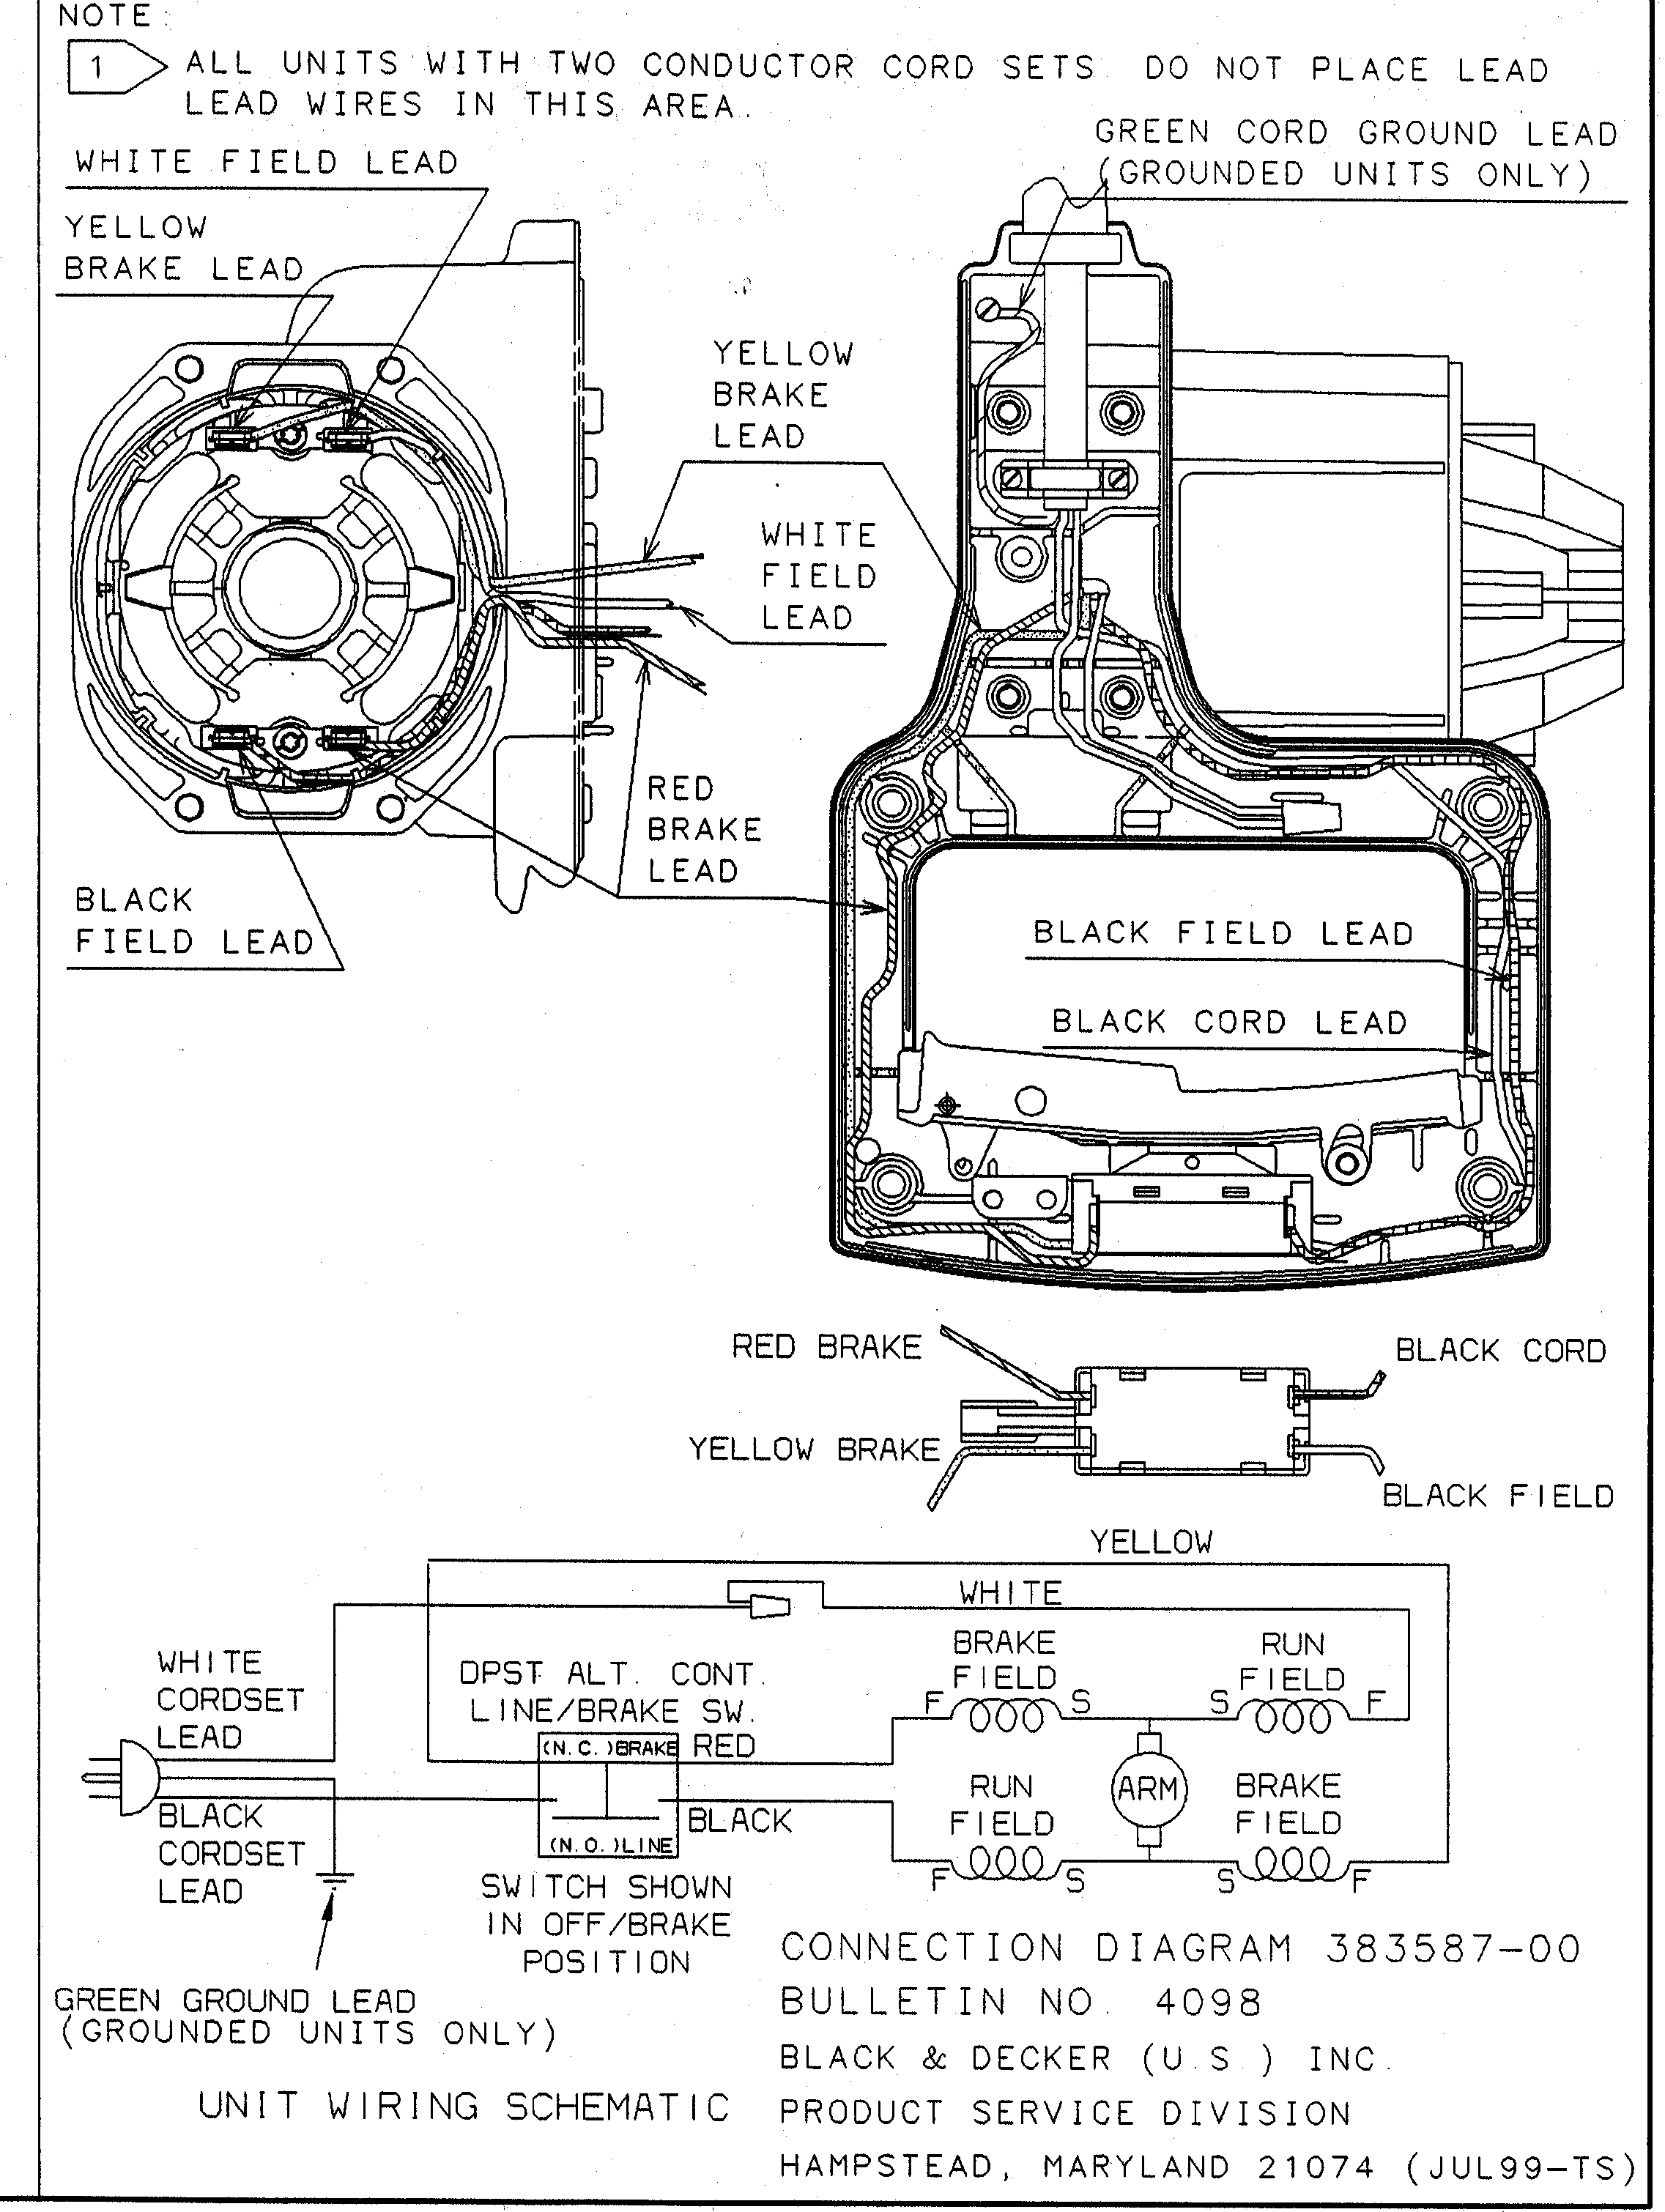 dewalt wiring diagram captain source of wiring diagram Dewalt DC500 Wiring-Diagram